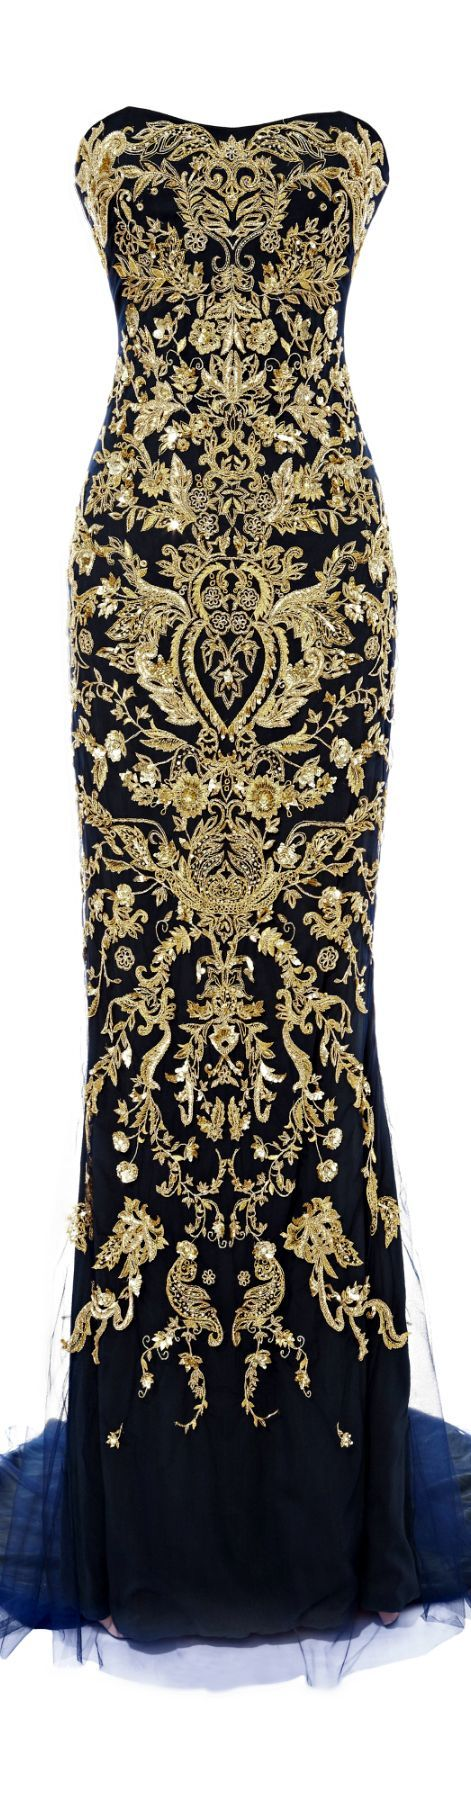 Marchesa ● SS 2014 ● Fishtail Gown With Ornament Embroidery- gorgeus